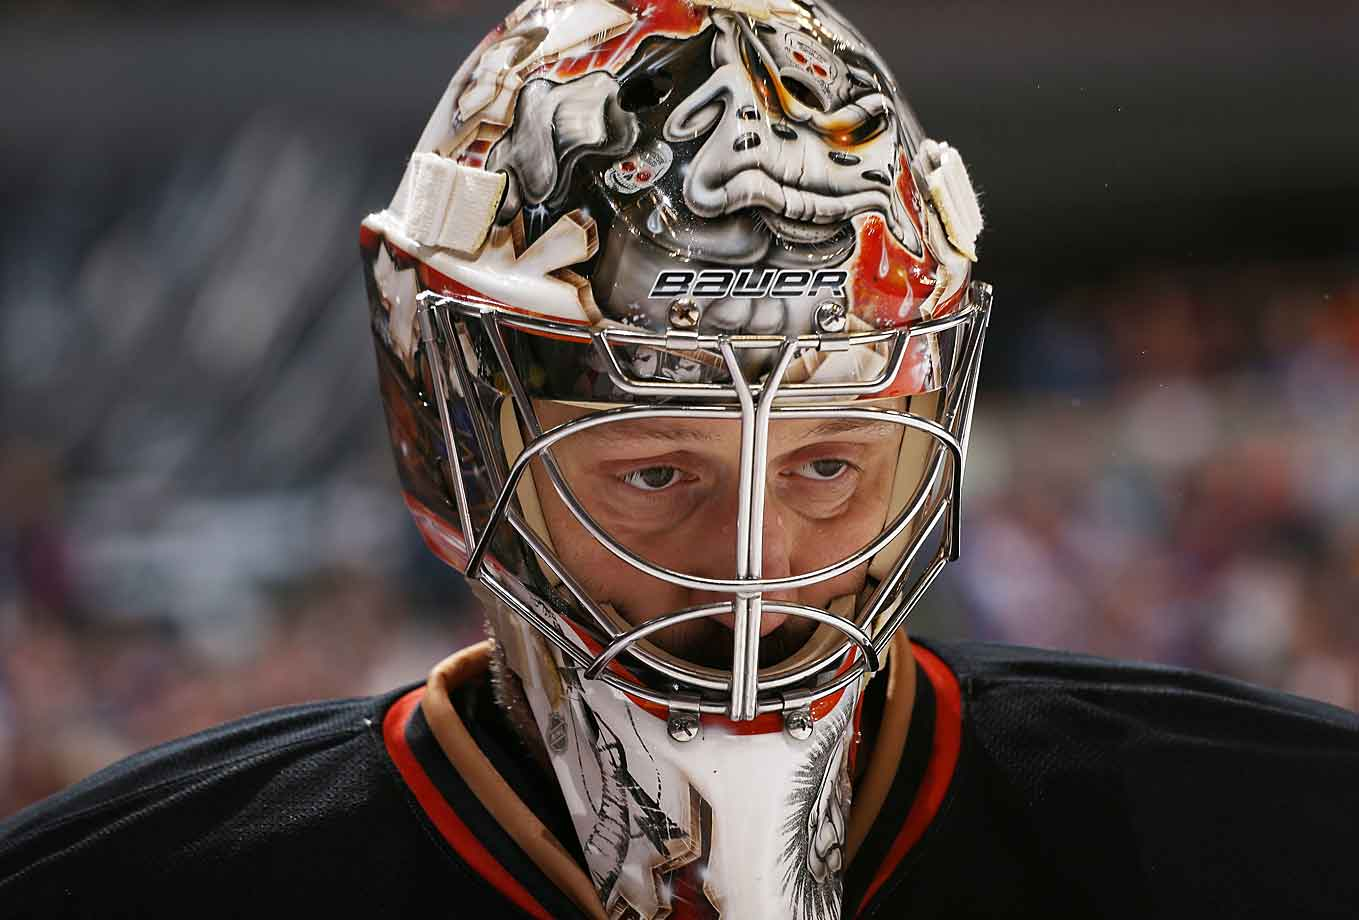 It wasn't Halloween, but journeyman goaltender Jason LaBarbera seemed to have a haunted look as he backstopped the Ducks to a 3-2 win over Colorado at the Pepsi Center in Denver on November 2, 2014.